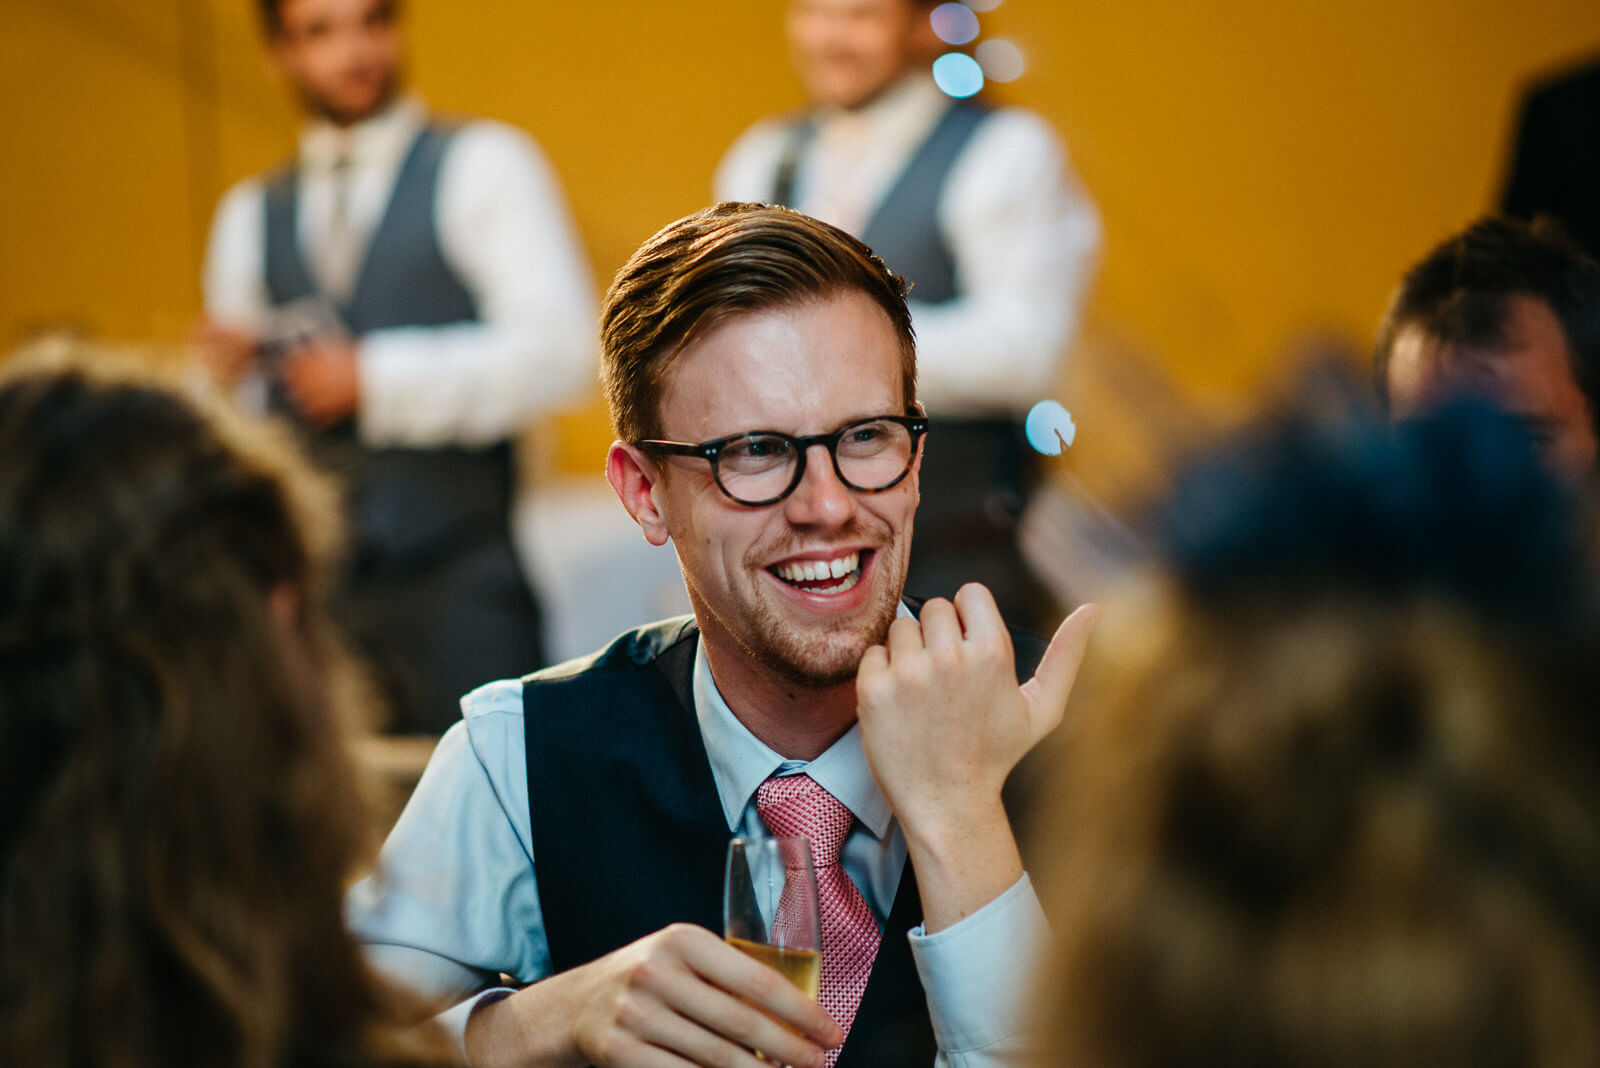 Male guest laughing during speeches at Shropshire festival wedding